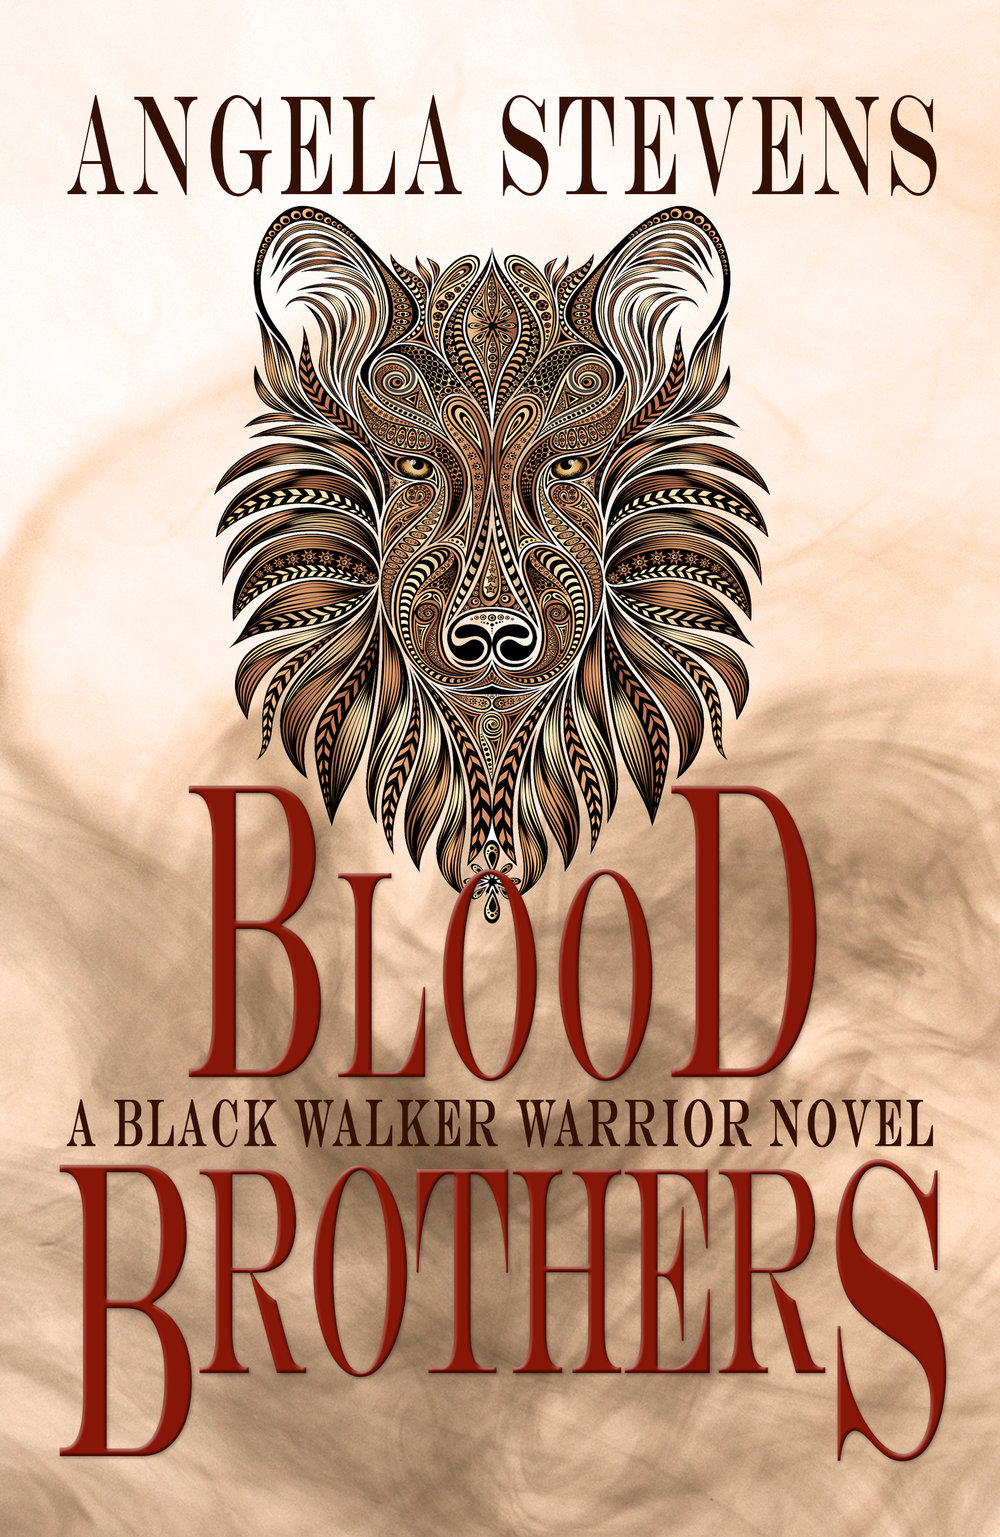 Blood Brothers E BOOK FINAL copy copy.jpg